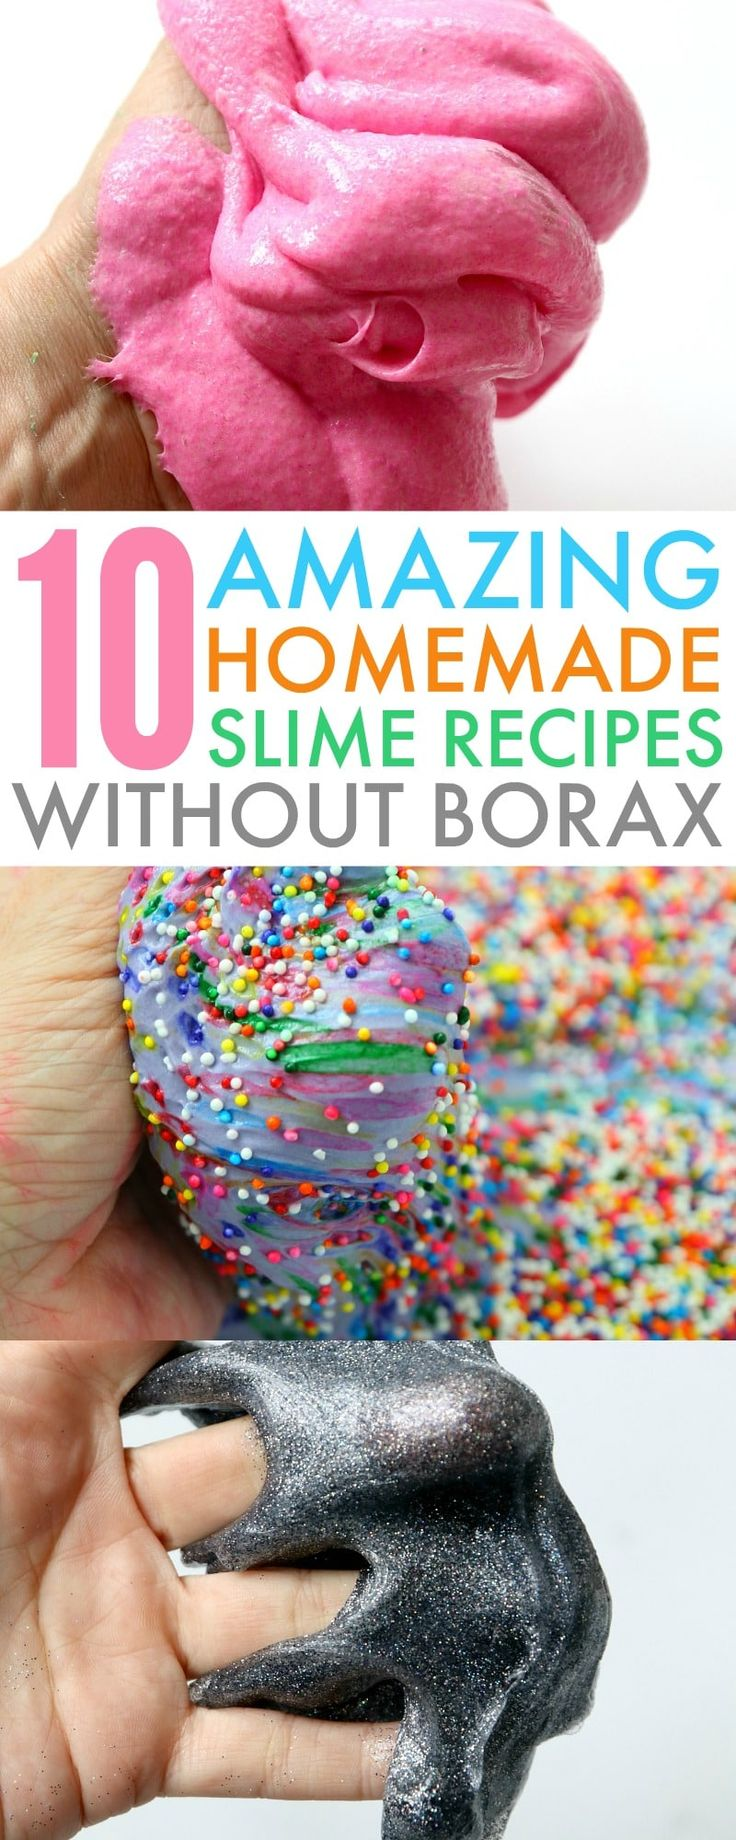 Learn how to make a Homemade Slime Recipe Without Borax with 10 amazing ideas including fluffy slime, unicorn poop slime, glow-in-the-dark slime & more! https://www.730sagestreet.com/homemade-slime-recipe-without-borax/